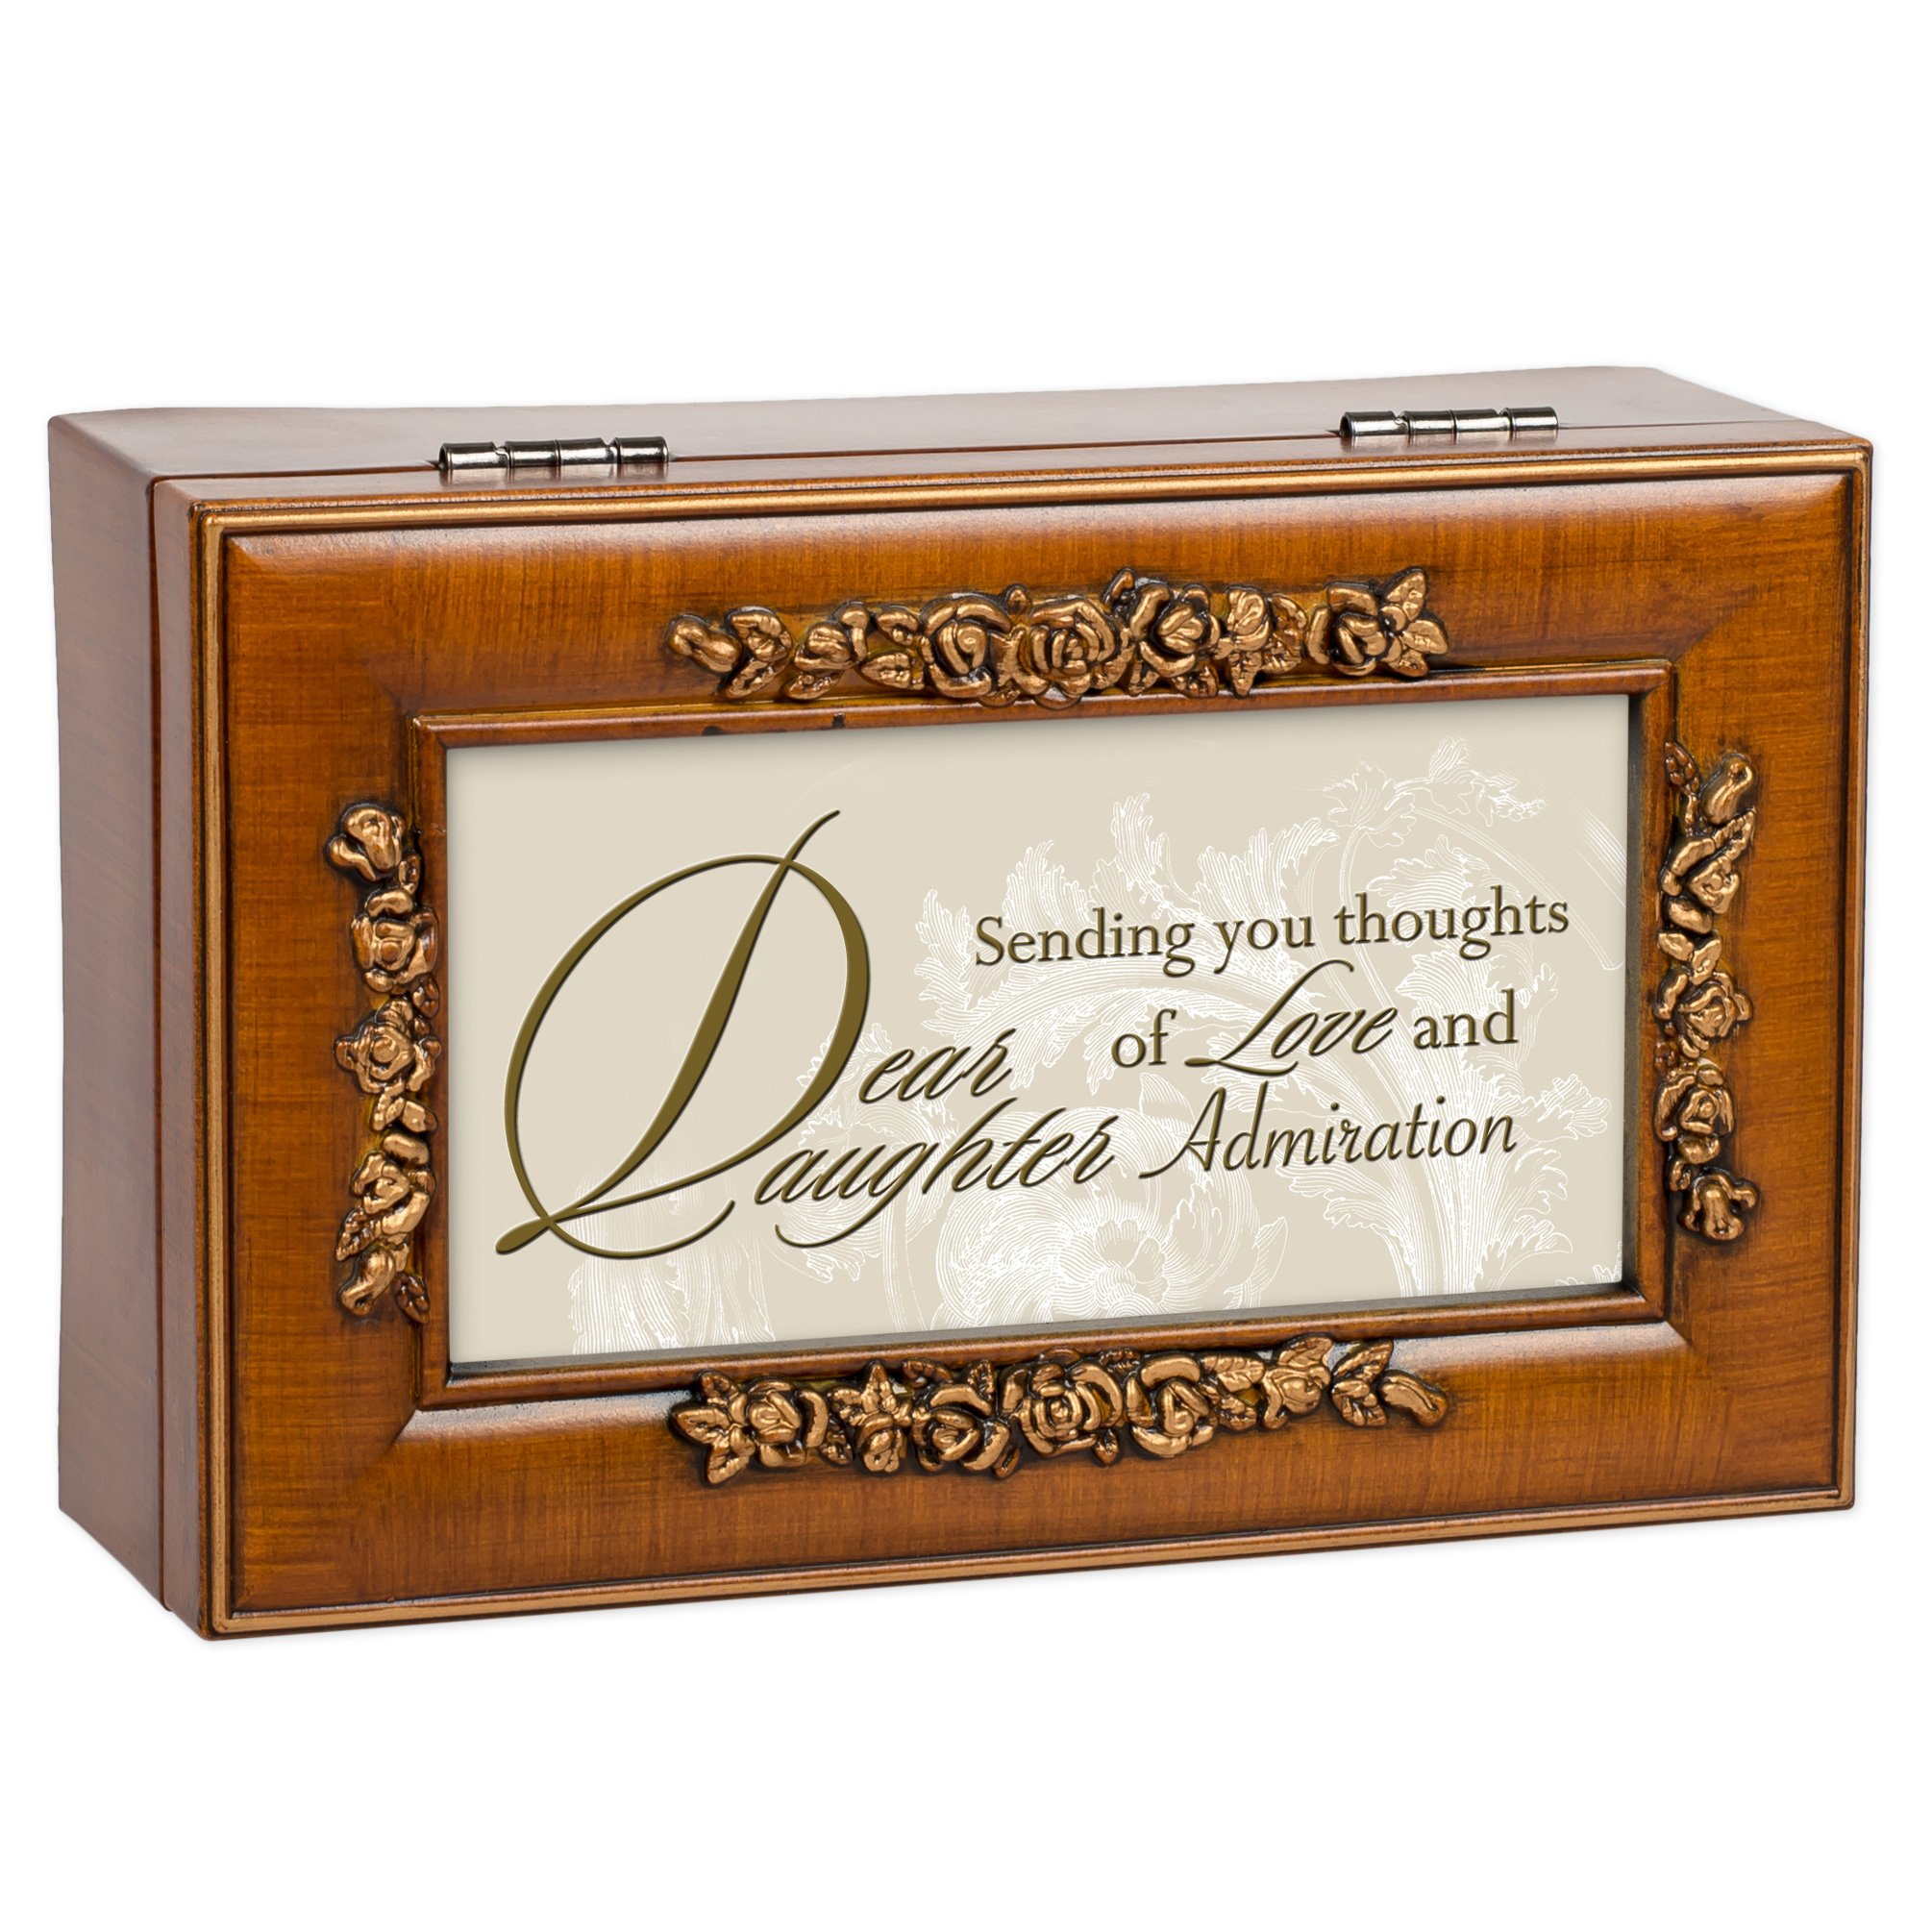 Dear Daughter Wood Finish Rose Jewelry Music Box - Plays You are my Sunshine